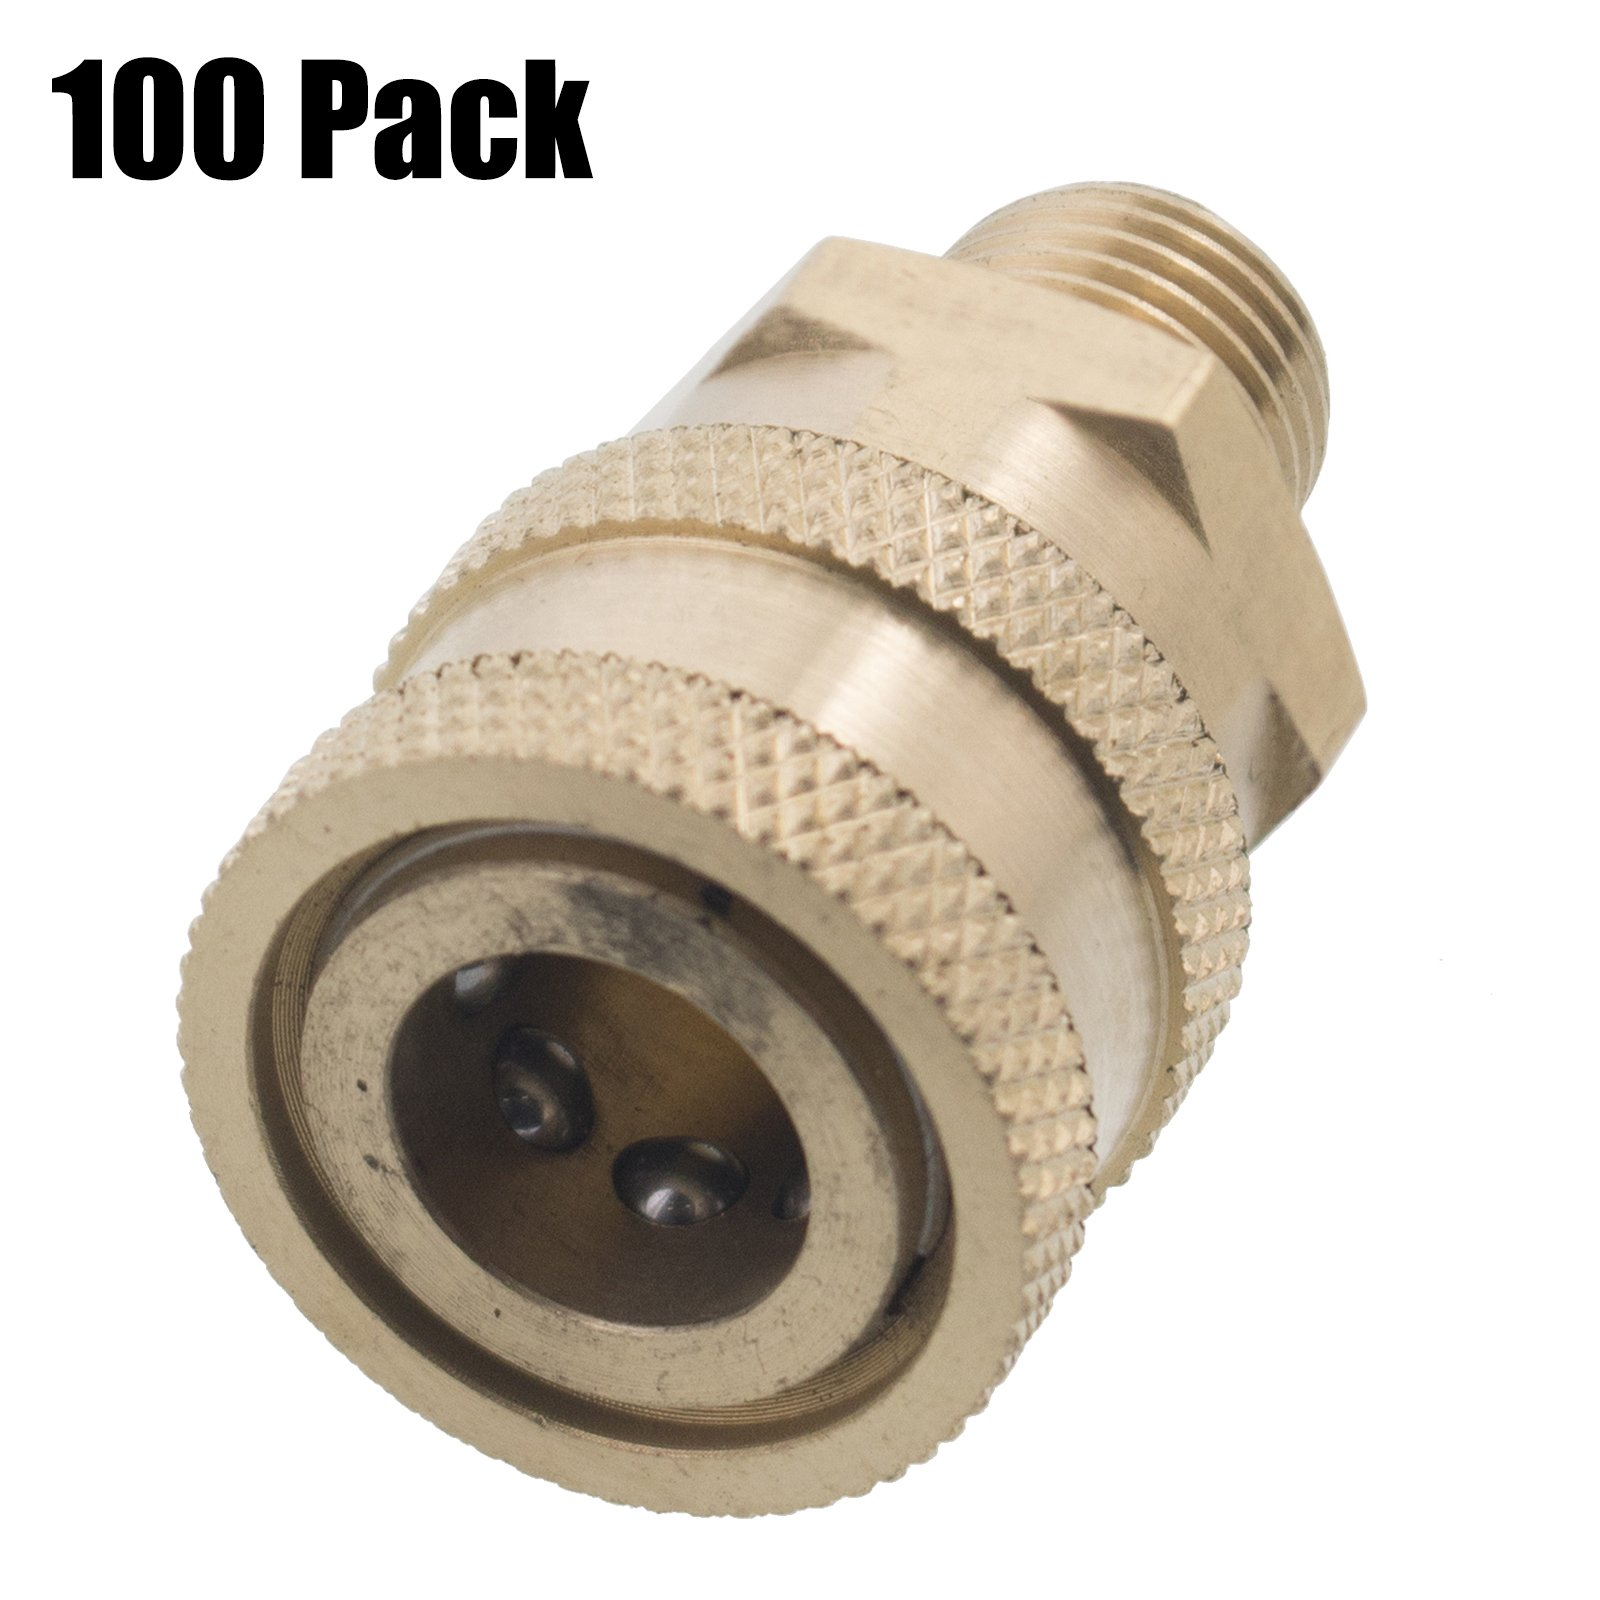 Erie Tools 100 1/4in. MPT Male Brass Socket Quick Connect Coupler 4000 PSI 10 GPM for Pressure Washer Nozzle Gun Hose Wand